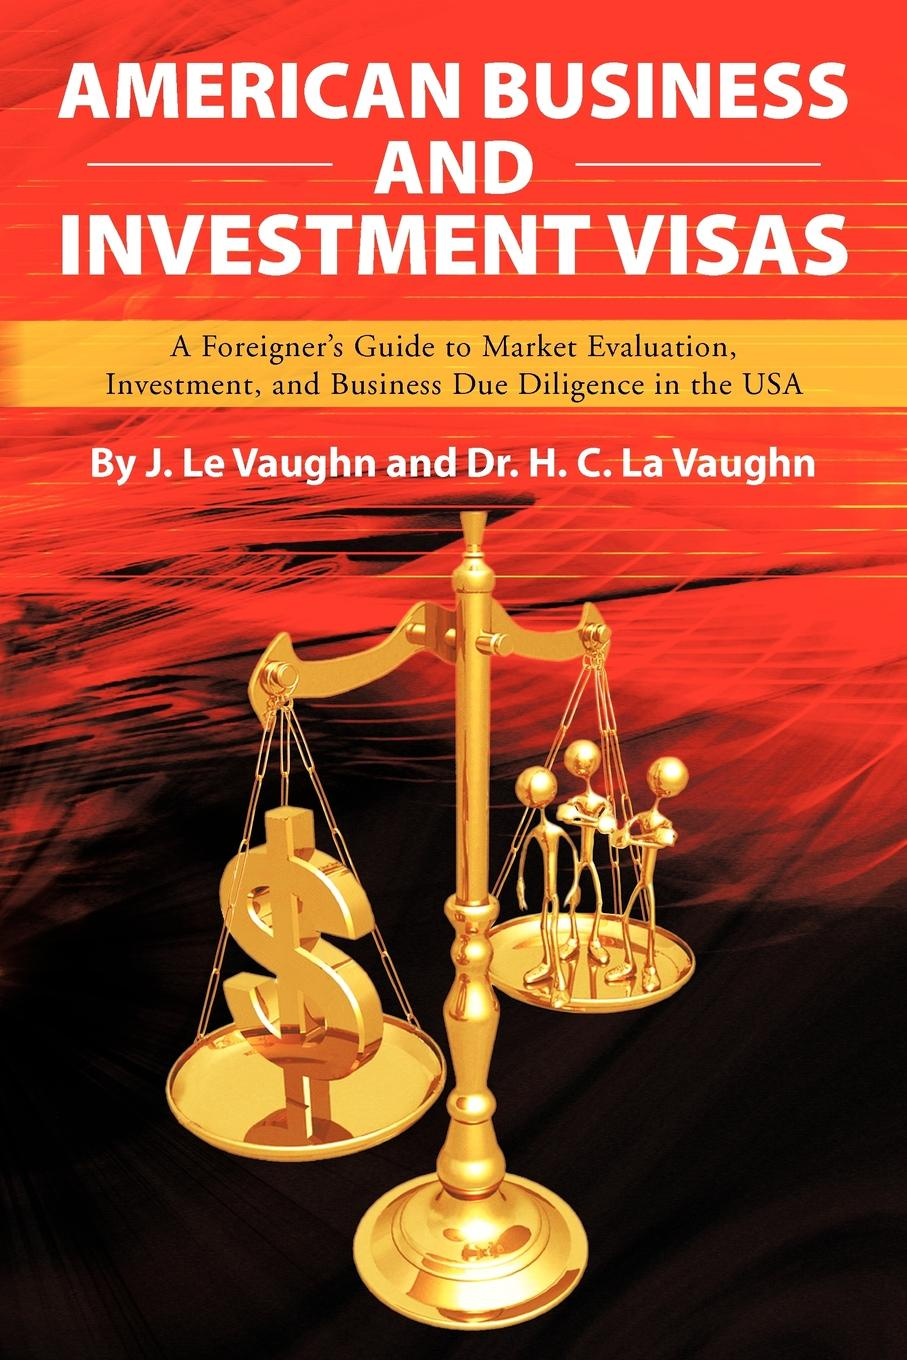 J. Le Vaughn American Business and Investment Visas. A Foreigner's Guide to Market Evaluation, Investment, and Business Due Diligence in the USA